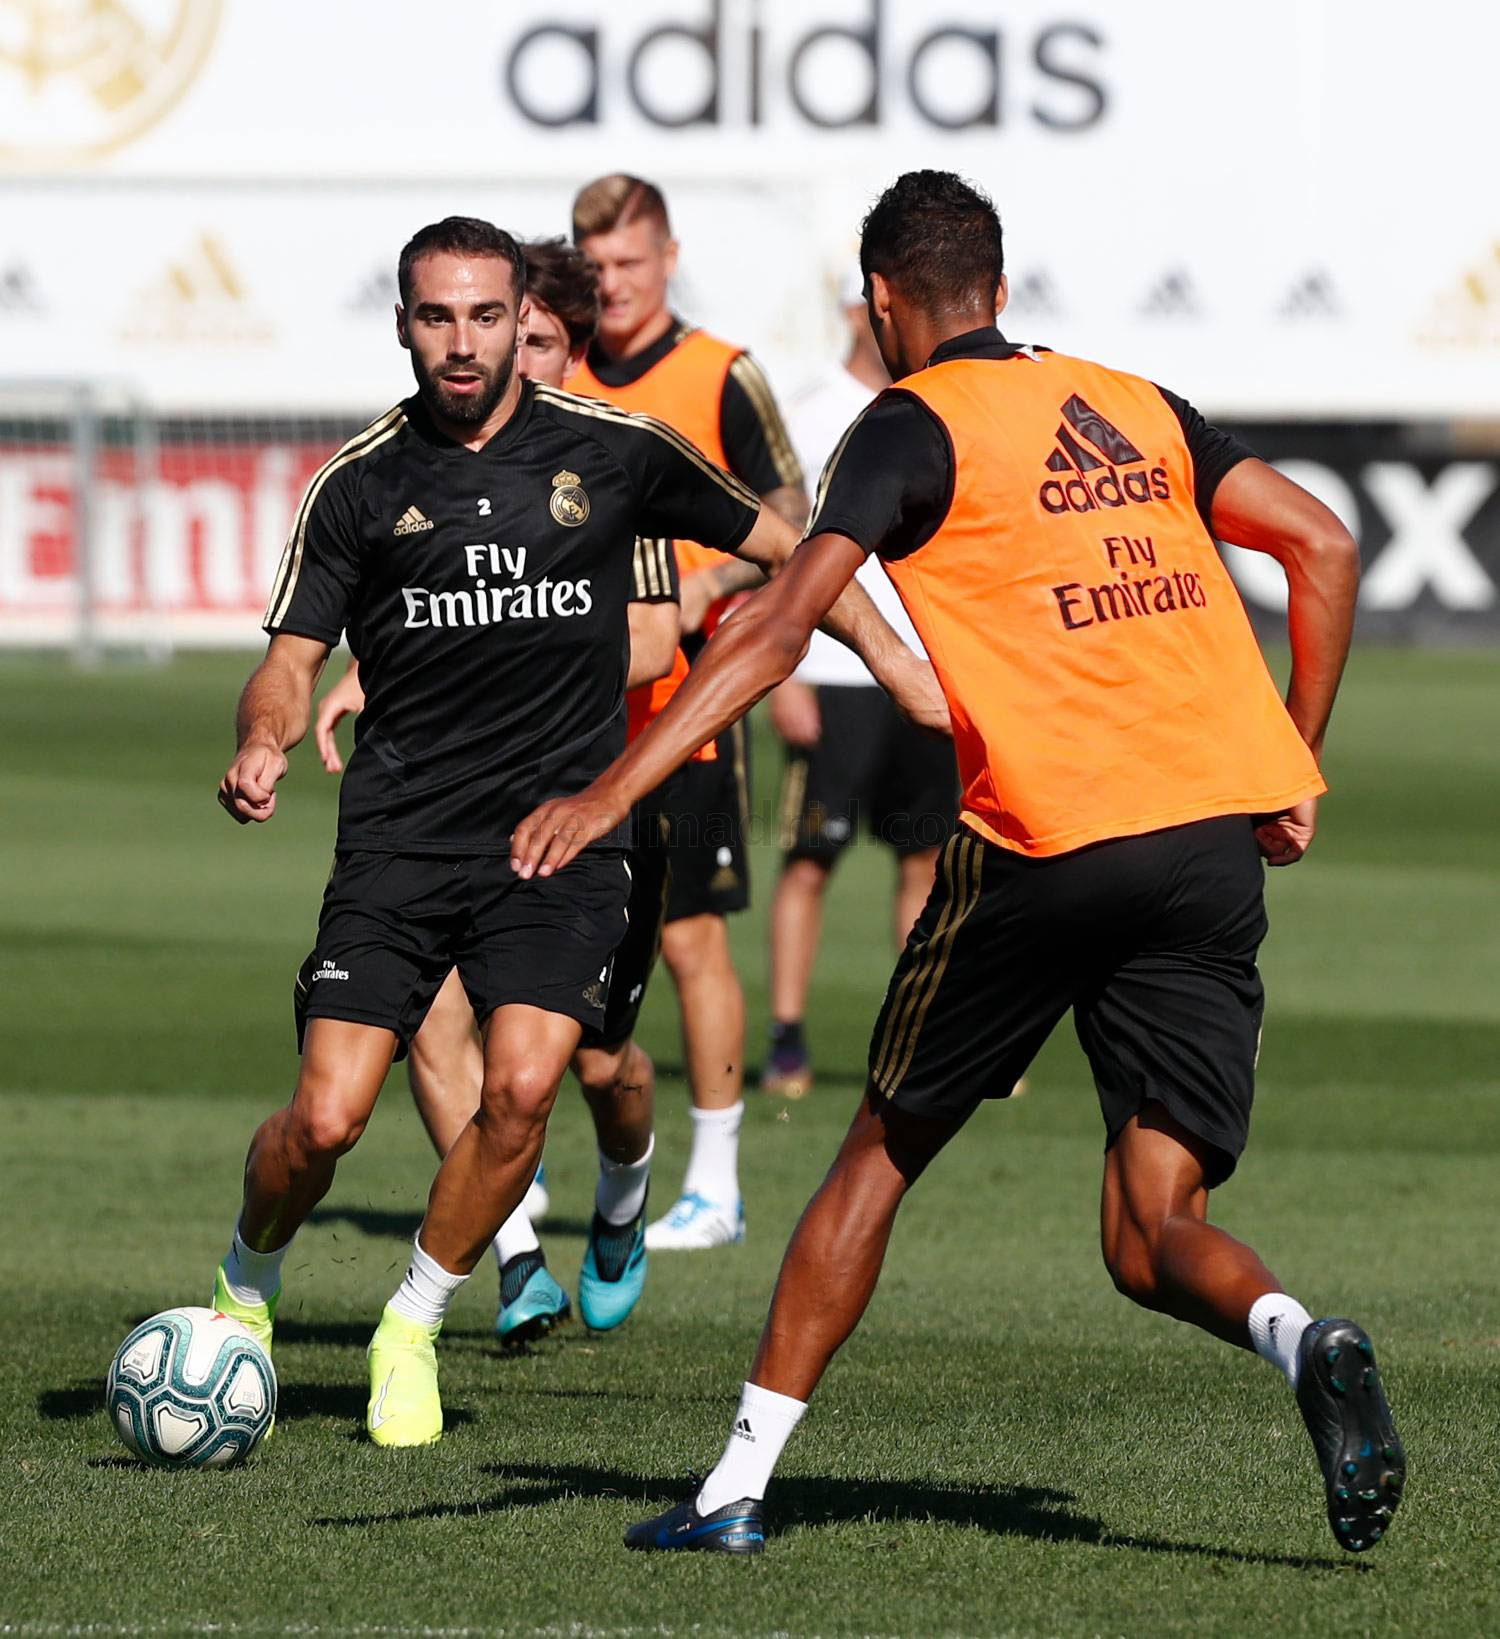 Real Madrid - Entrenamiento del Real Madrid  - 16-08-2019